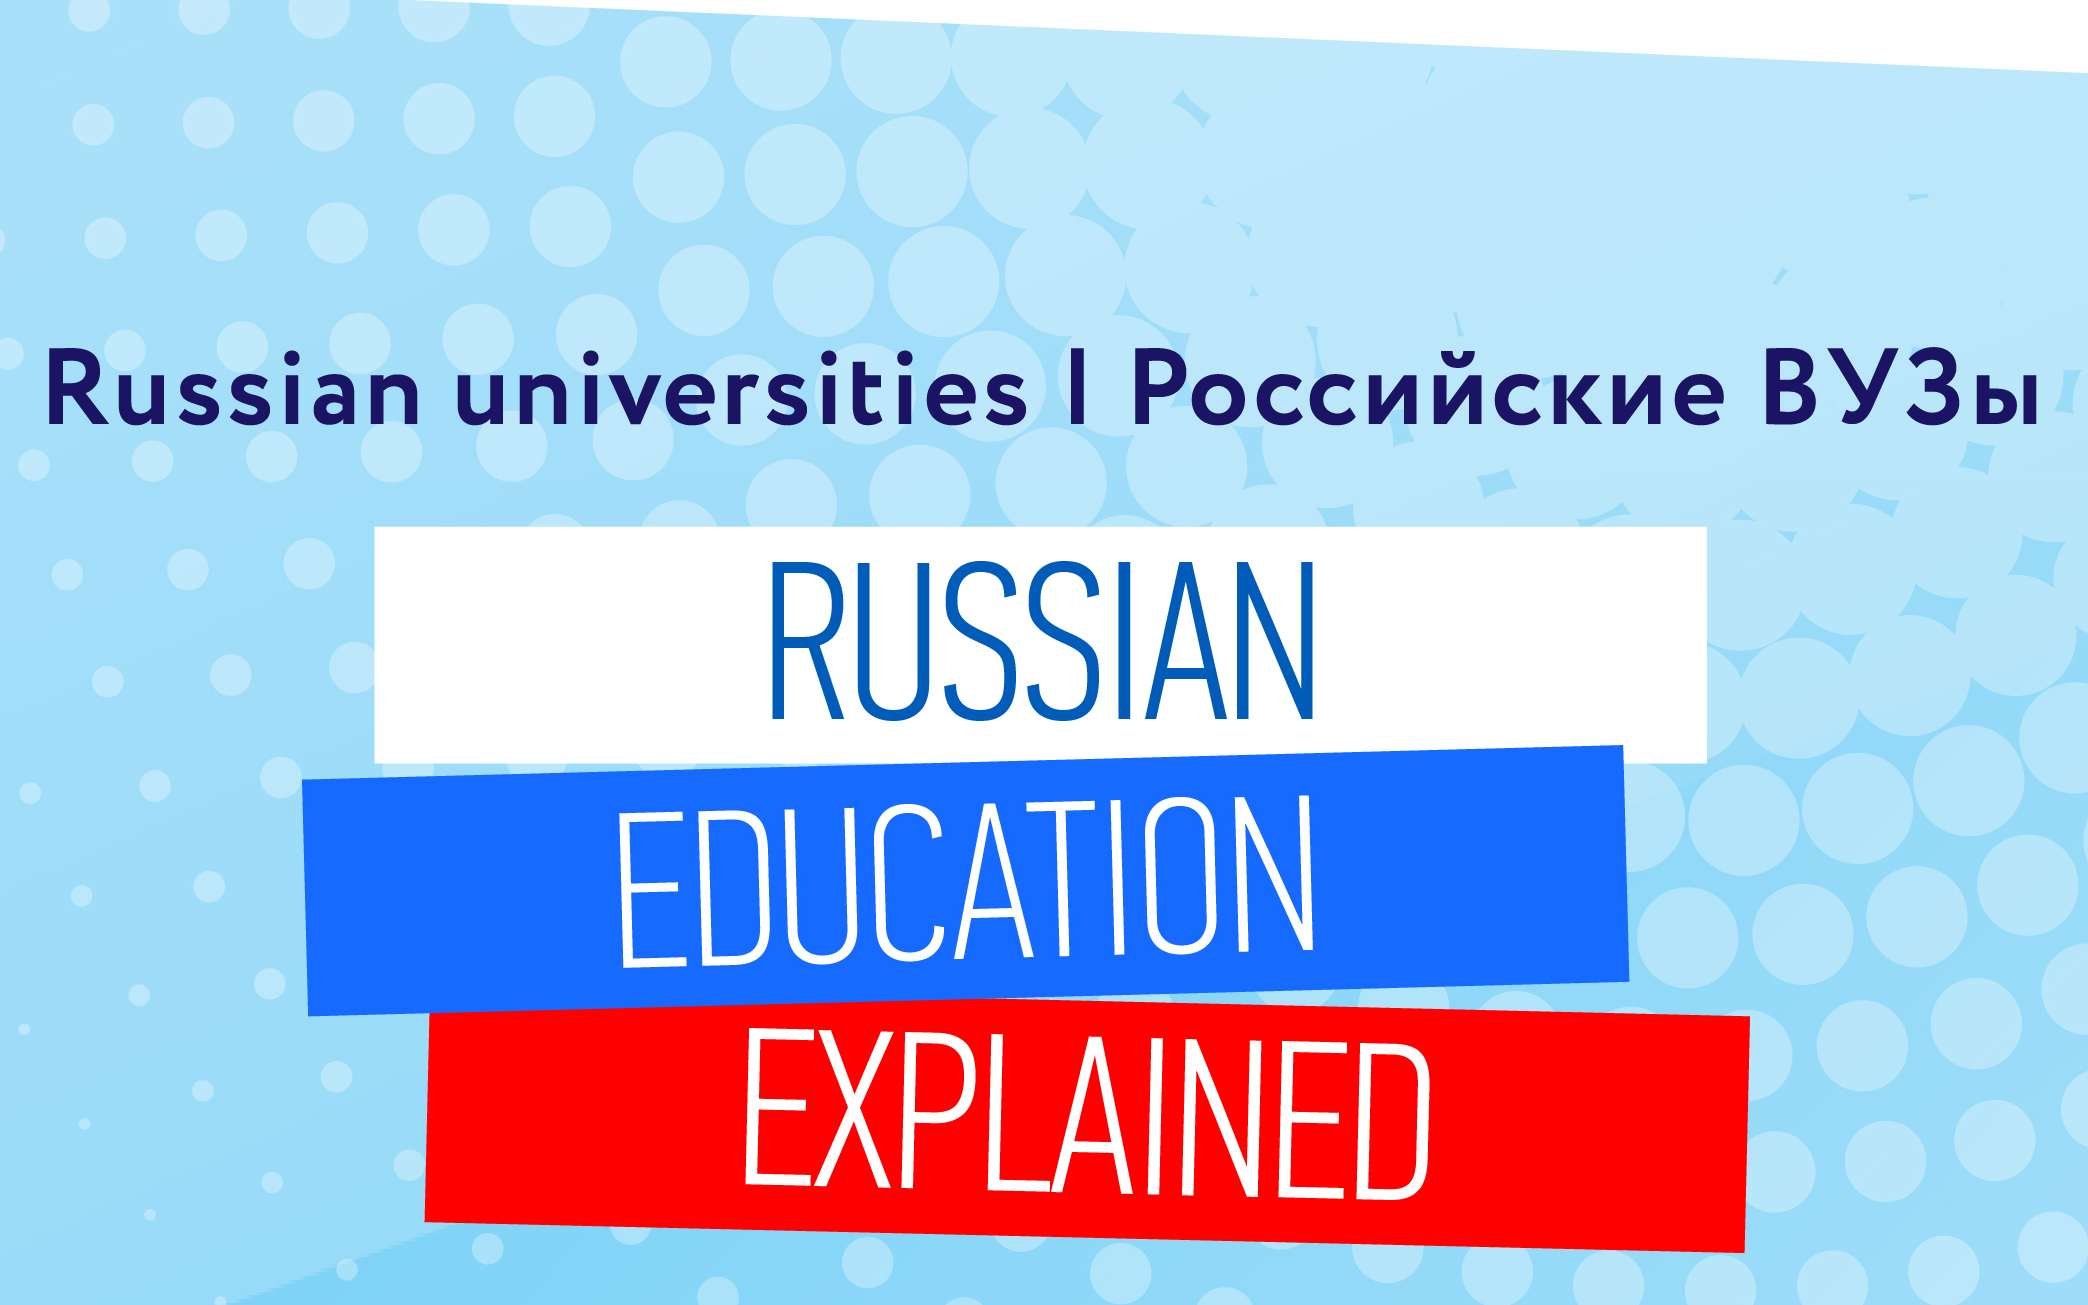 Russian Education Explained